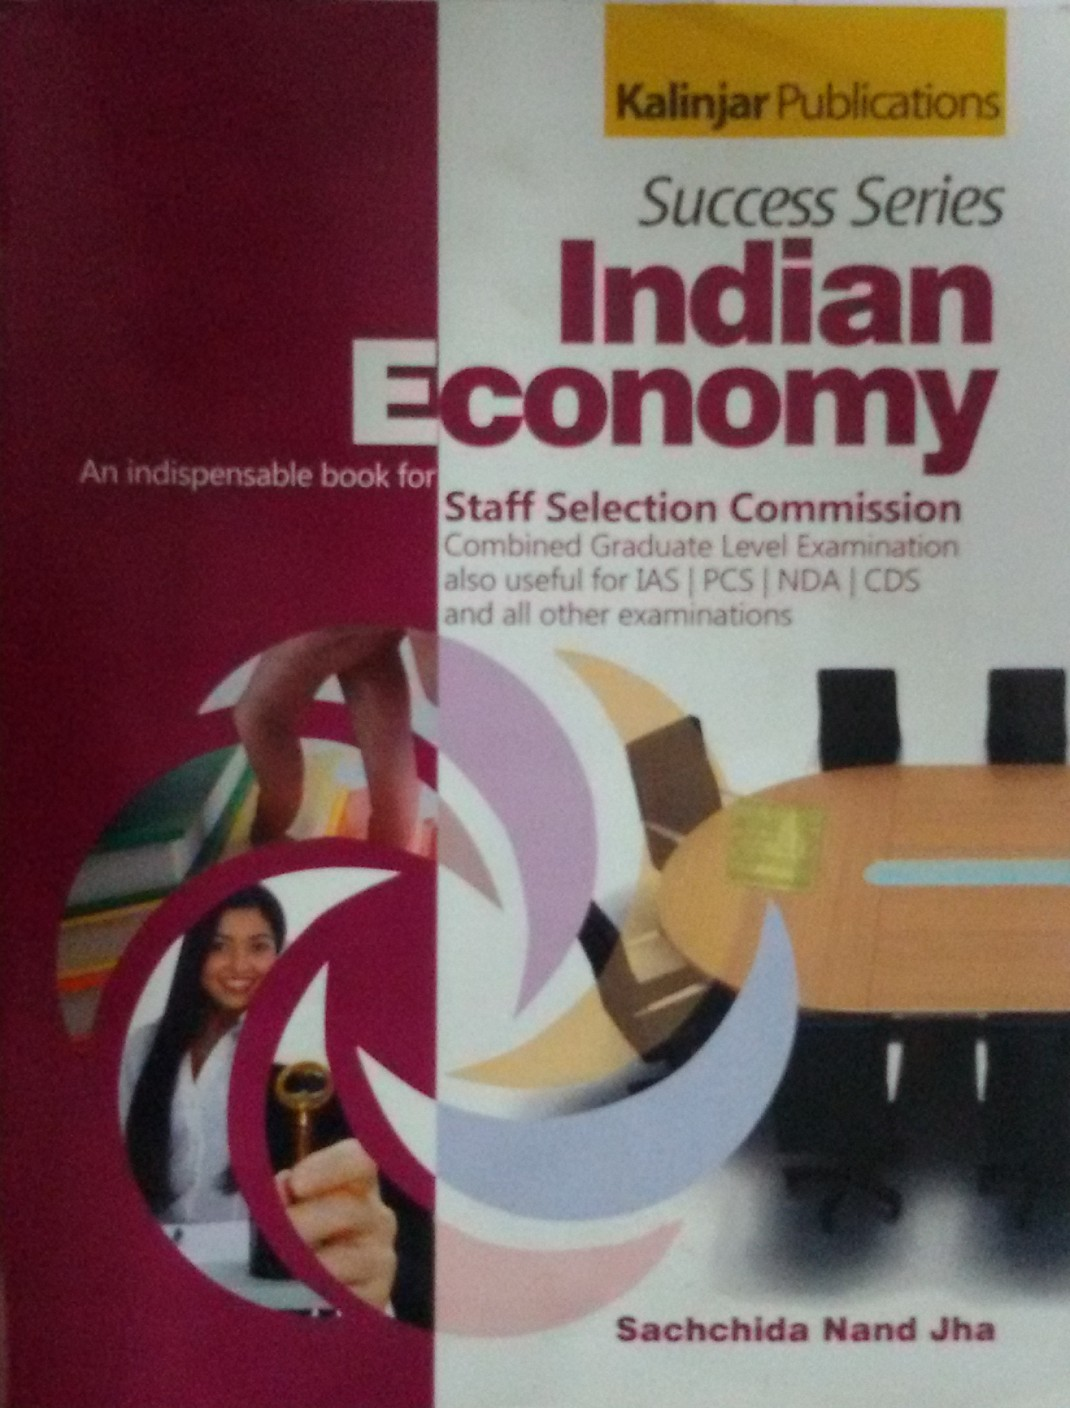 indias economic success Connecting decision makers to a dynamic network of information, people and ideas, bloomberg quickly and accurately delivers business and financial information, news and insight around the world.